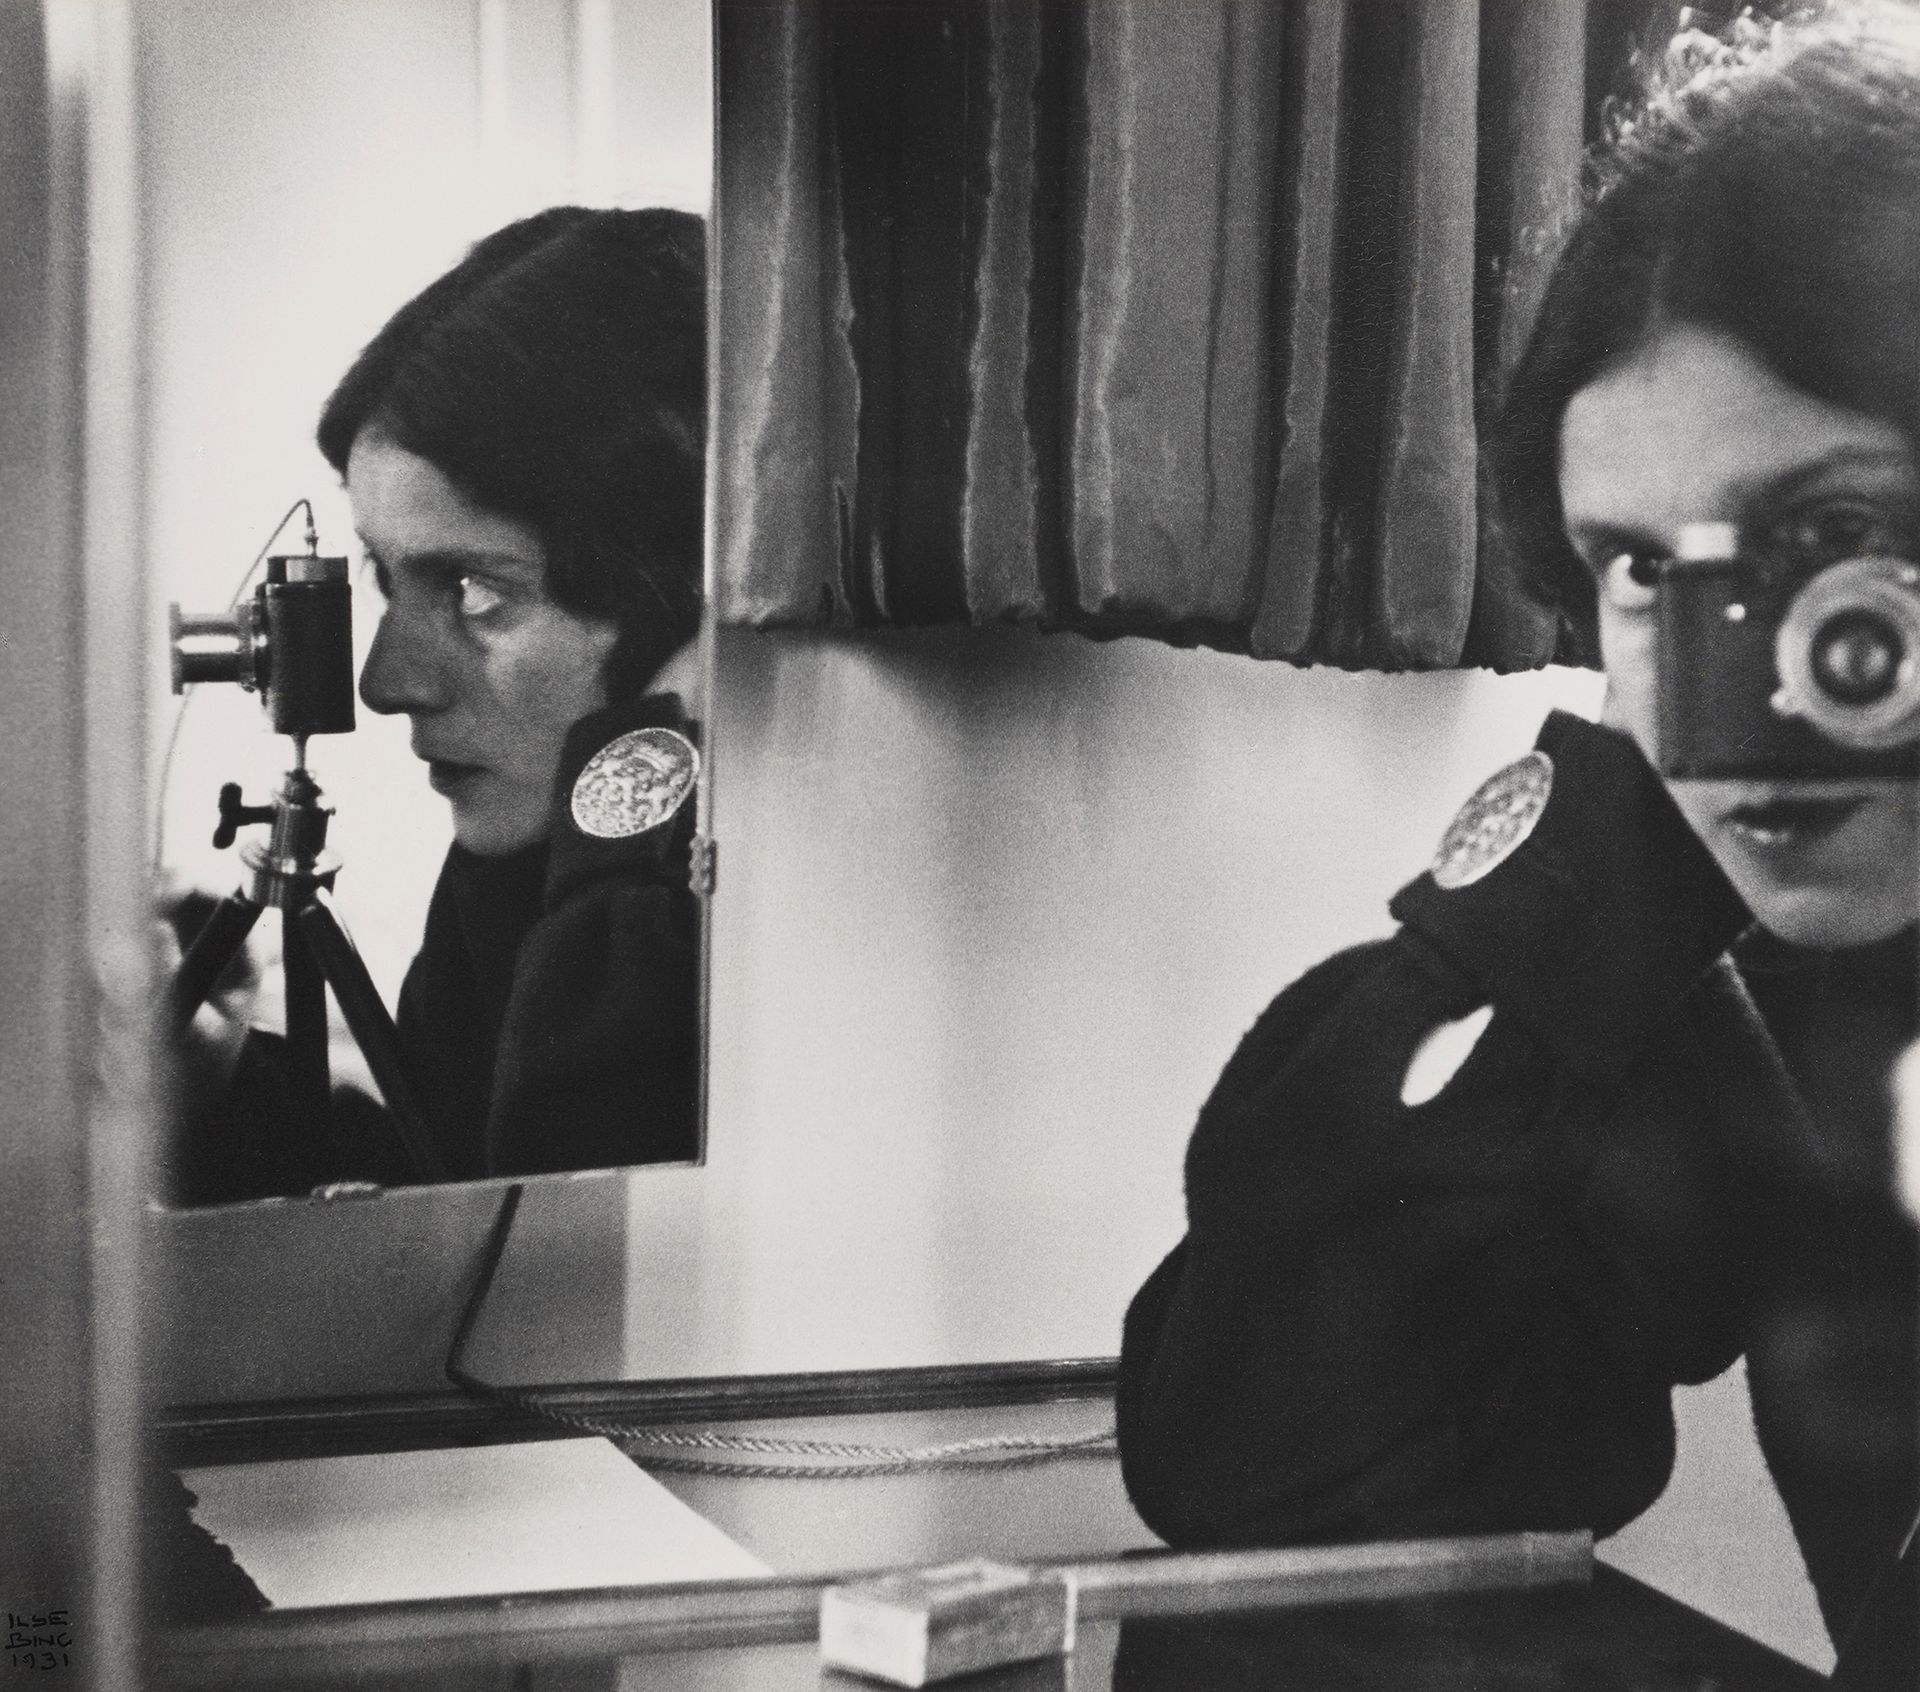 Ilse Bing, Self-Portrait with Leica 1931 Collection of Michael Mattis and Judith Hochberg